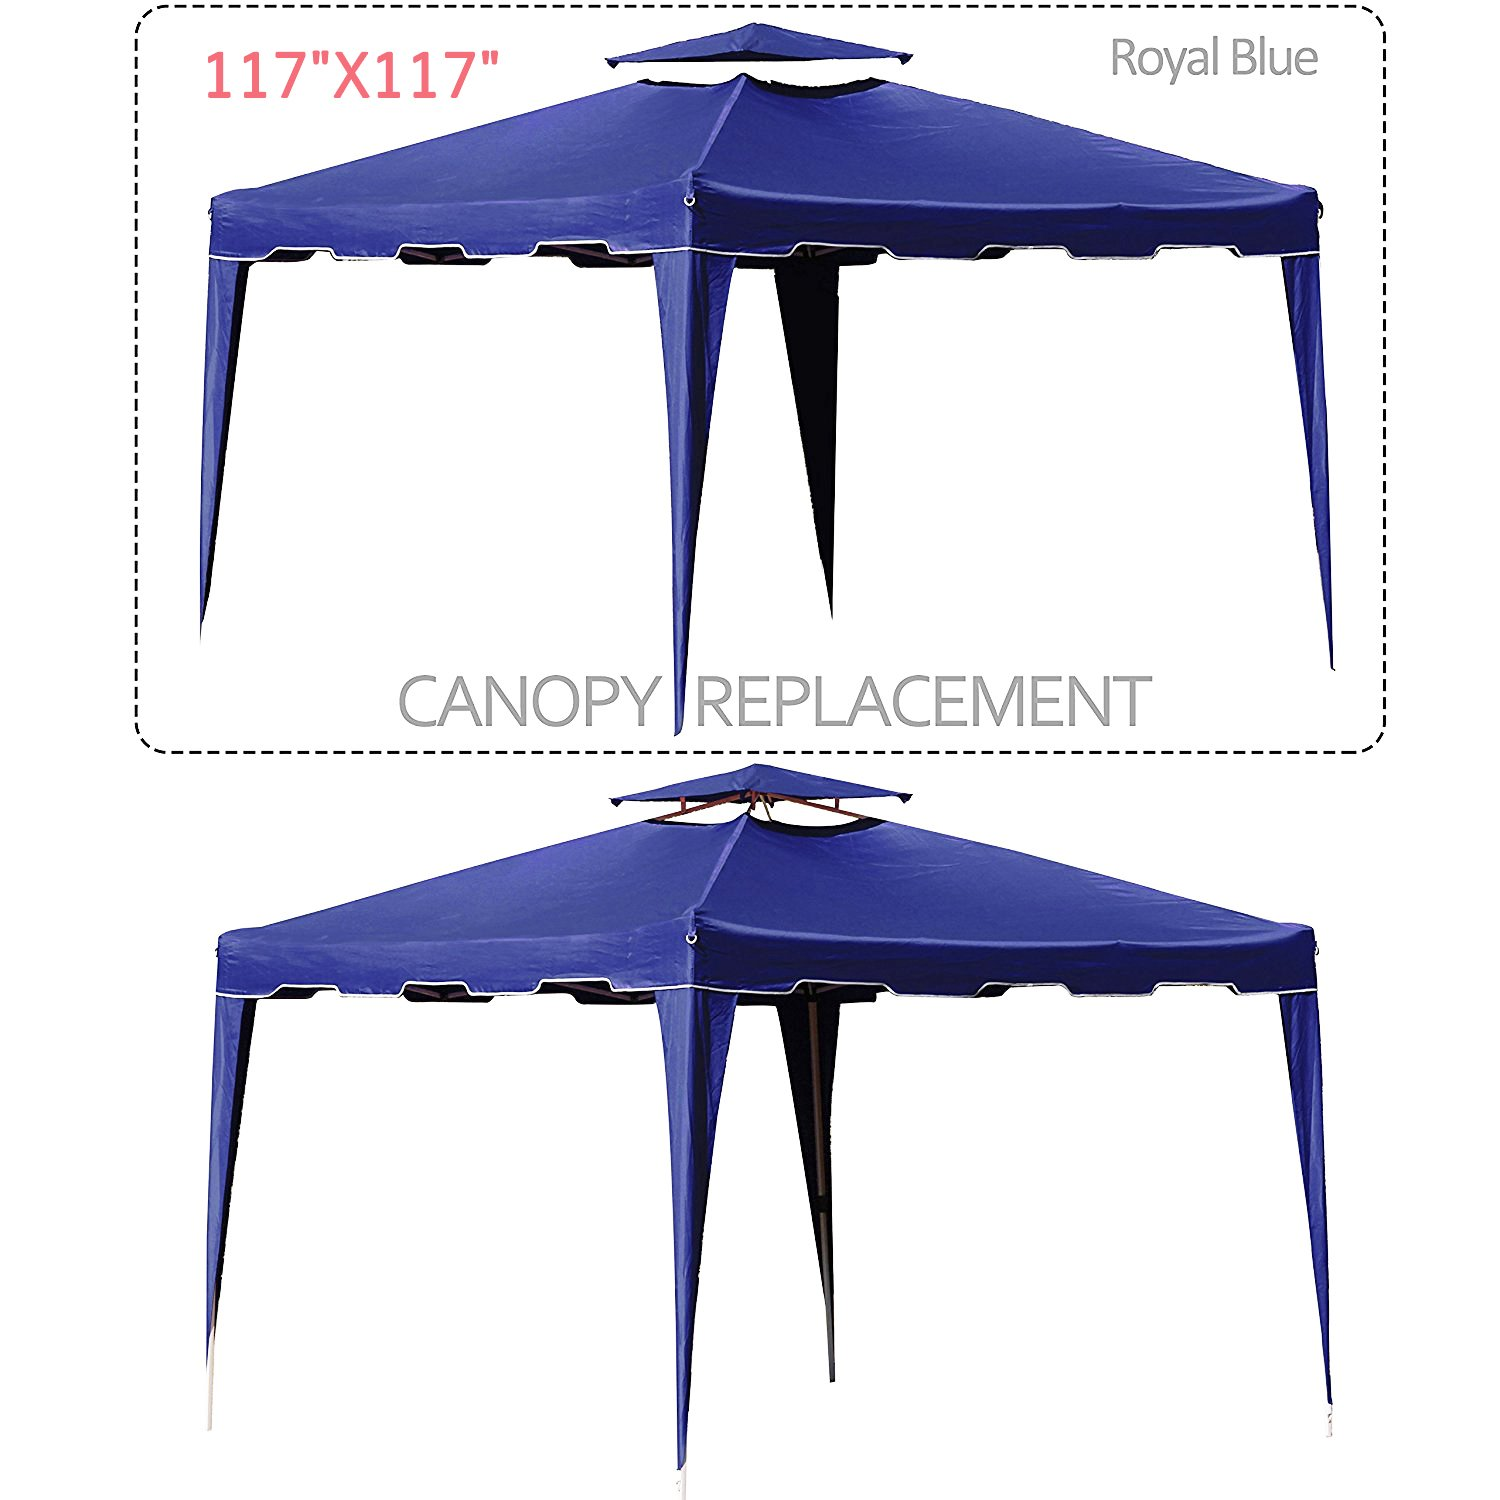 Cloud Mountain 117'' X 117'' Gazebo Replacement Canopy Top Cover, 2-tier UV Protect Resist Light Rain for Outdoor Patio Lawn Sun Shade Tent, Royal Blue (Only Replacement Cover)